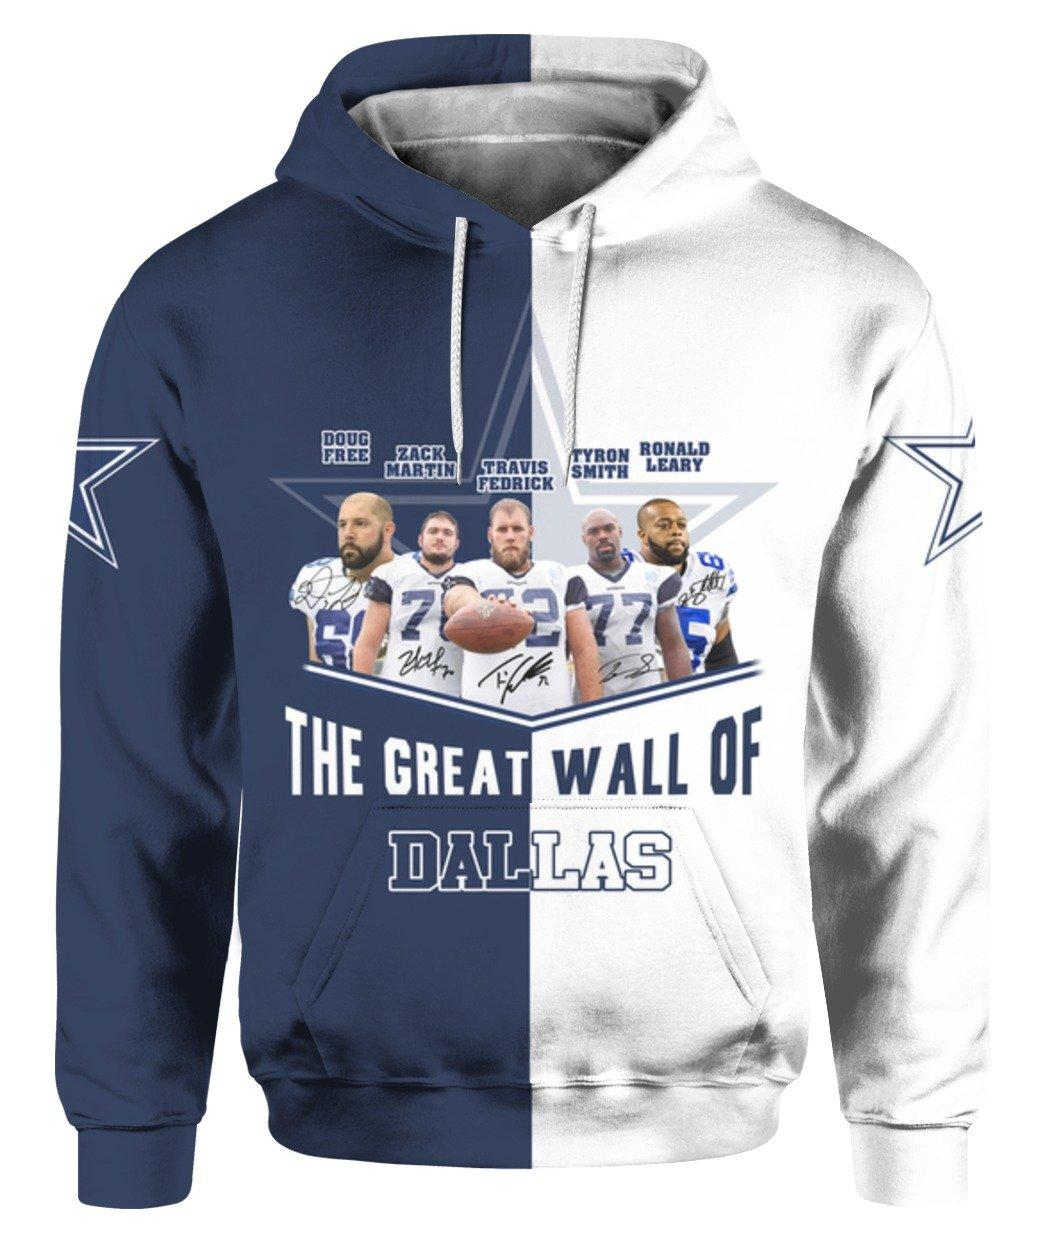 Dallas Cowboy Player The Great Wall Of Dallas 3d Full Printed Shirt 3d Graphic Printed Tshirt Hoodie Up To 5xl